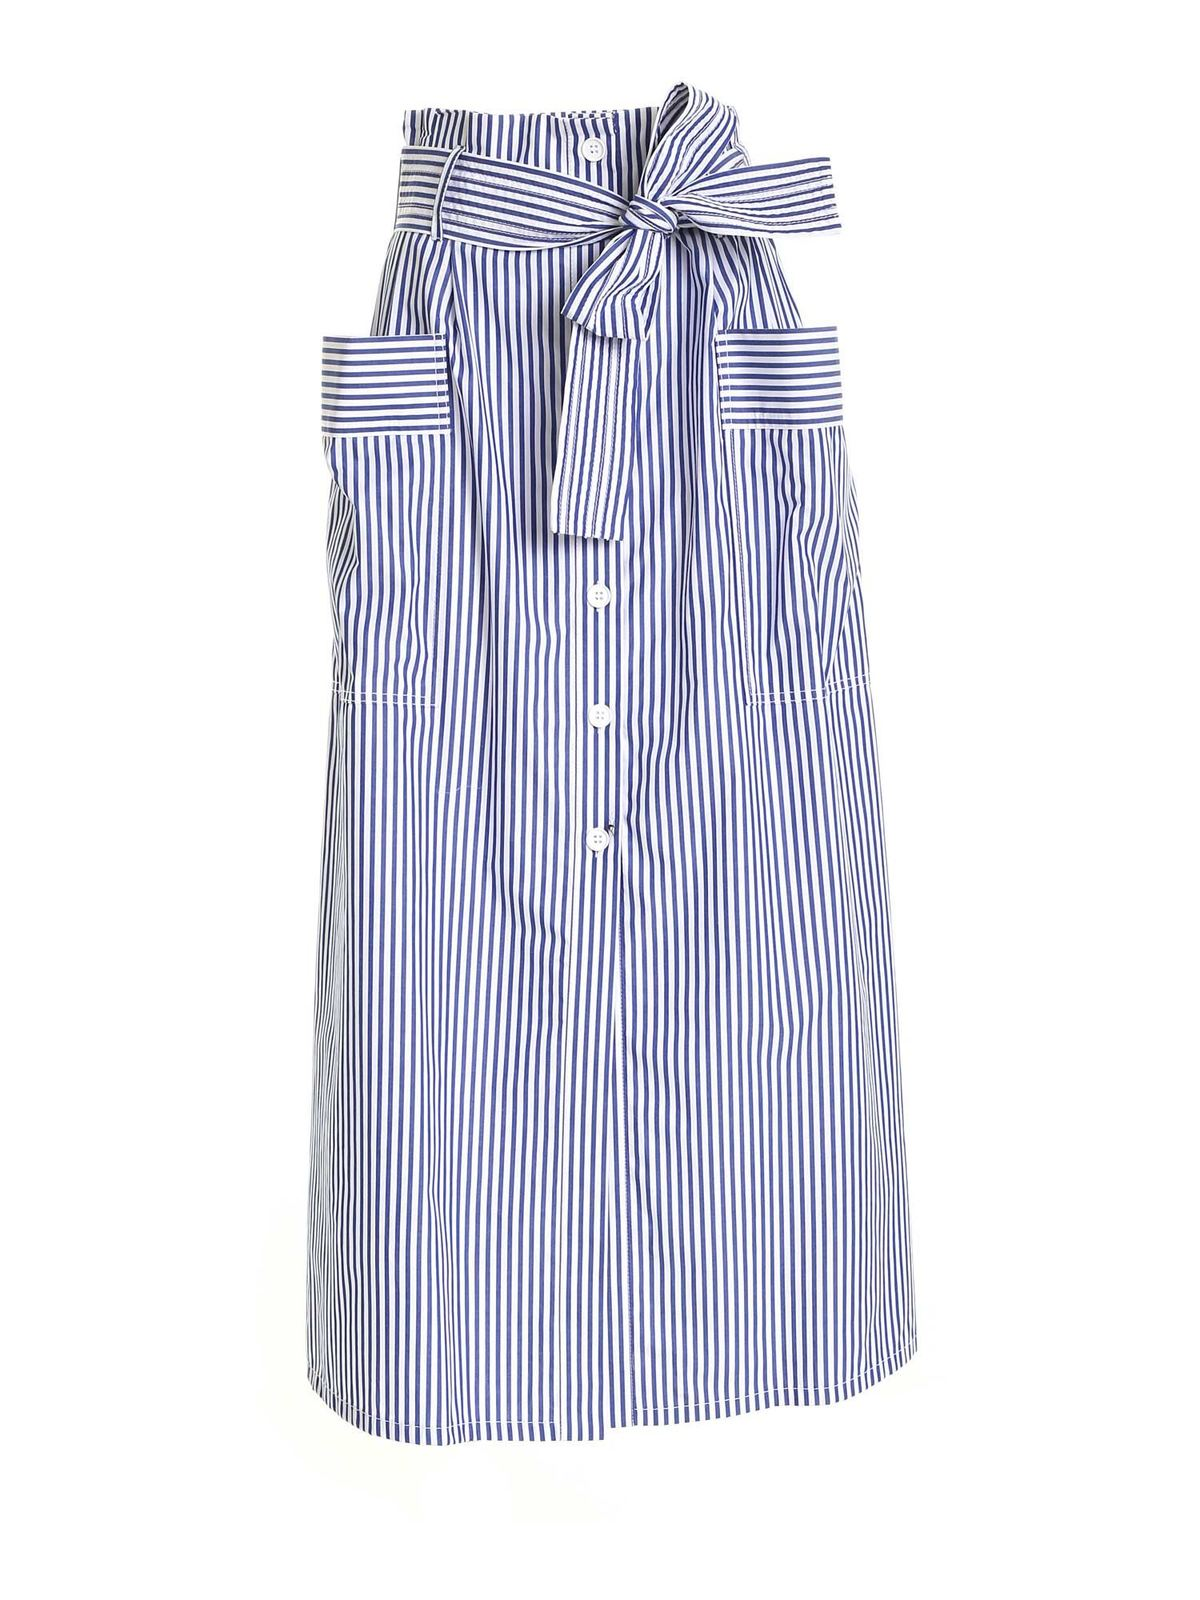 P.a.r.o.s.h. STRIPED SKIRT IN WHITE AND BLUE